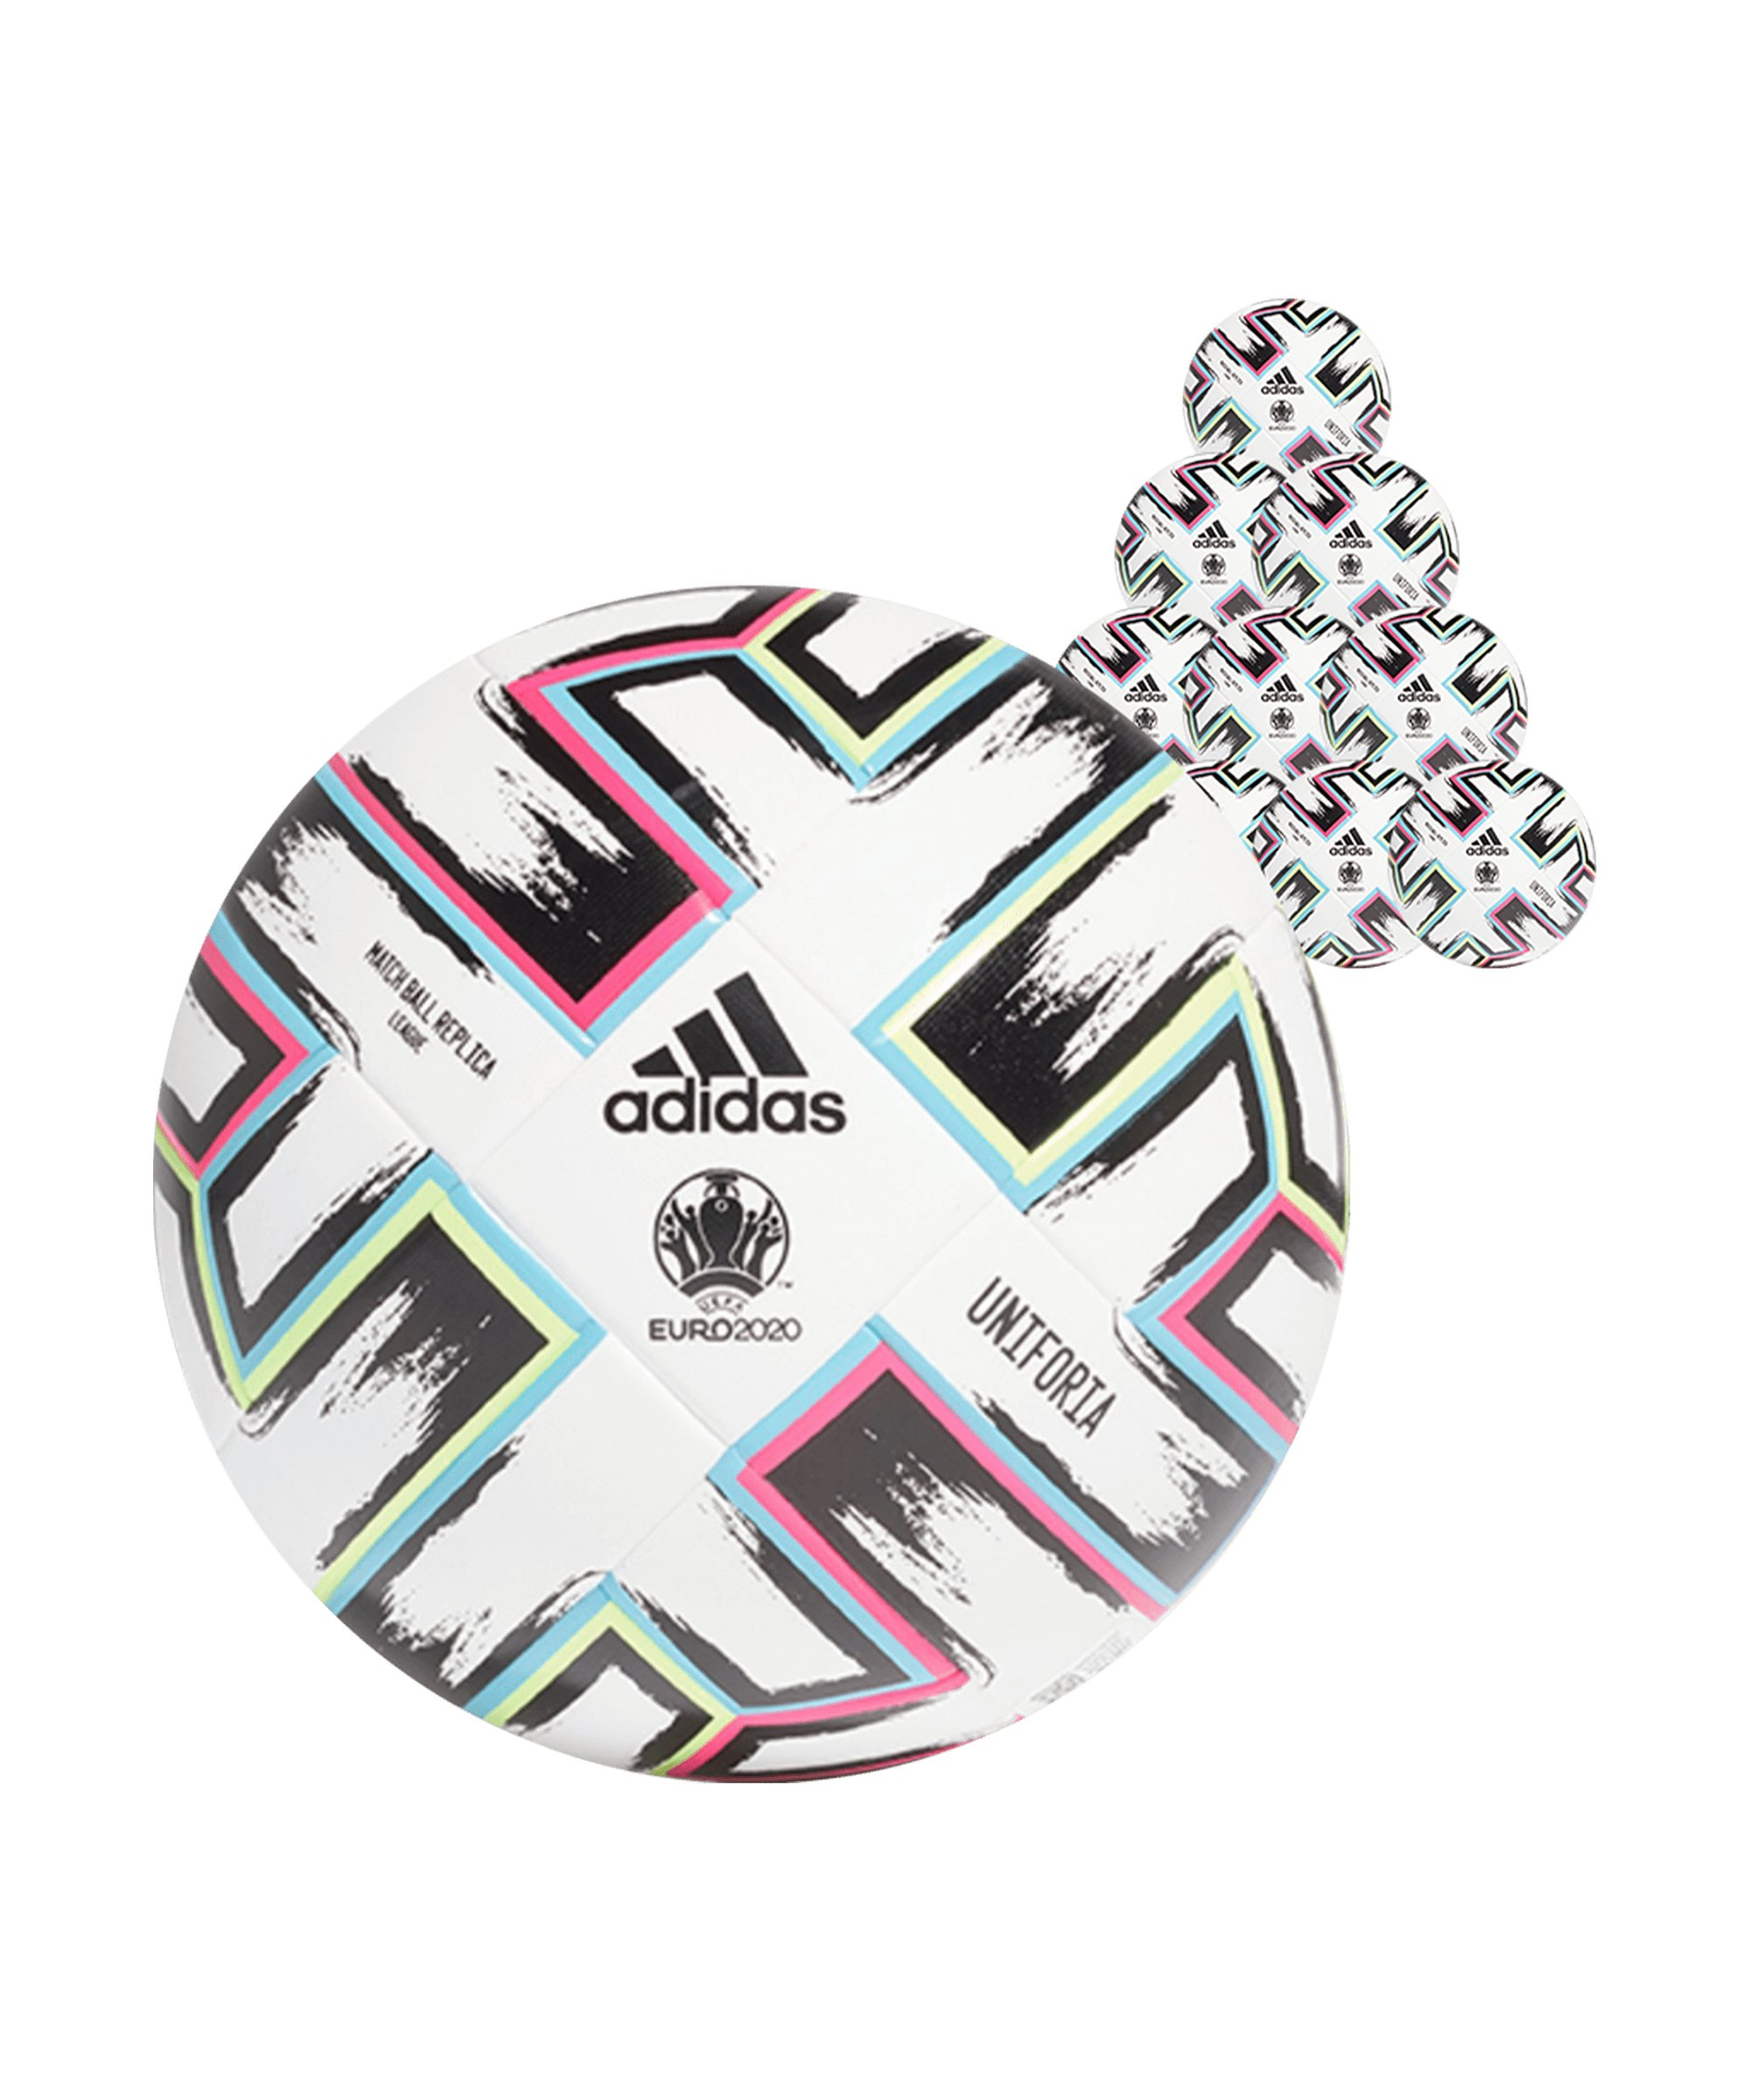 adidas LGE Uniforia Trainingsball 50x Gr. 5 Weiss - weiss